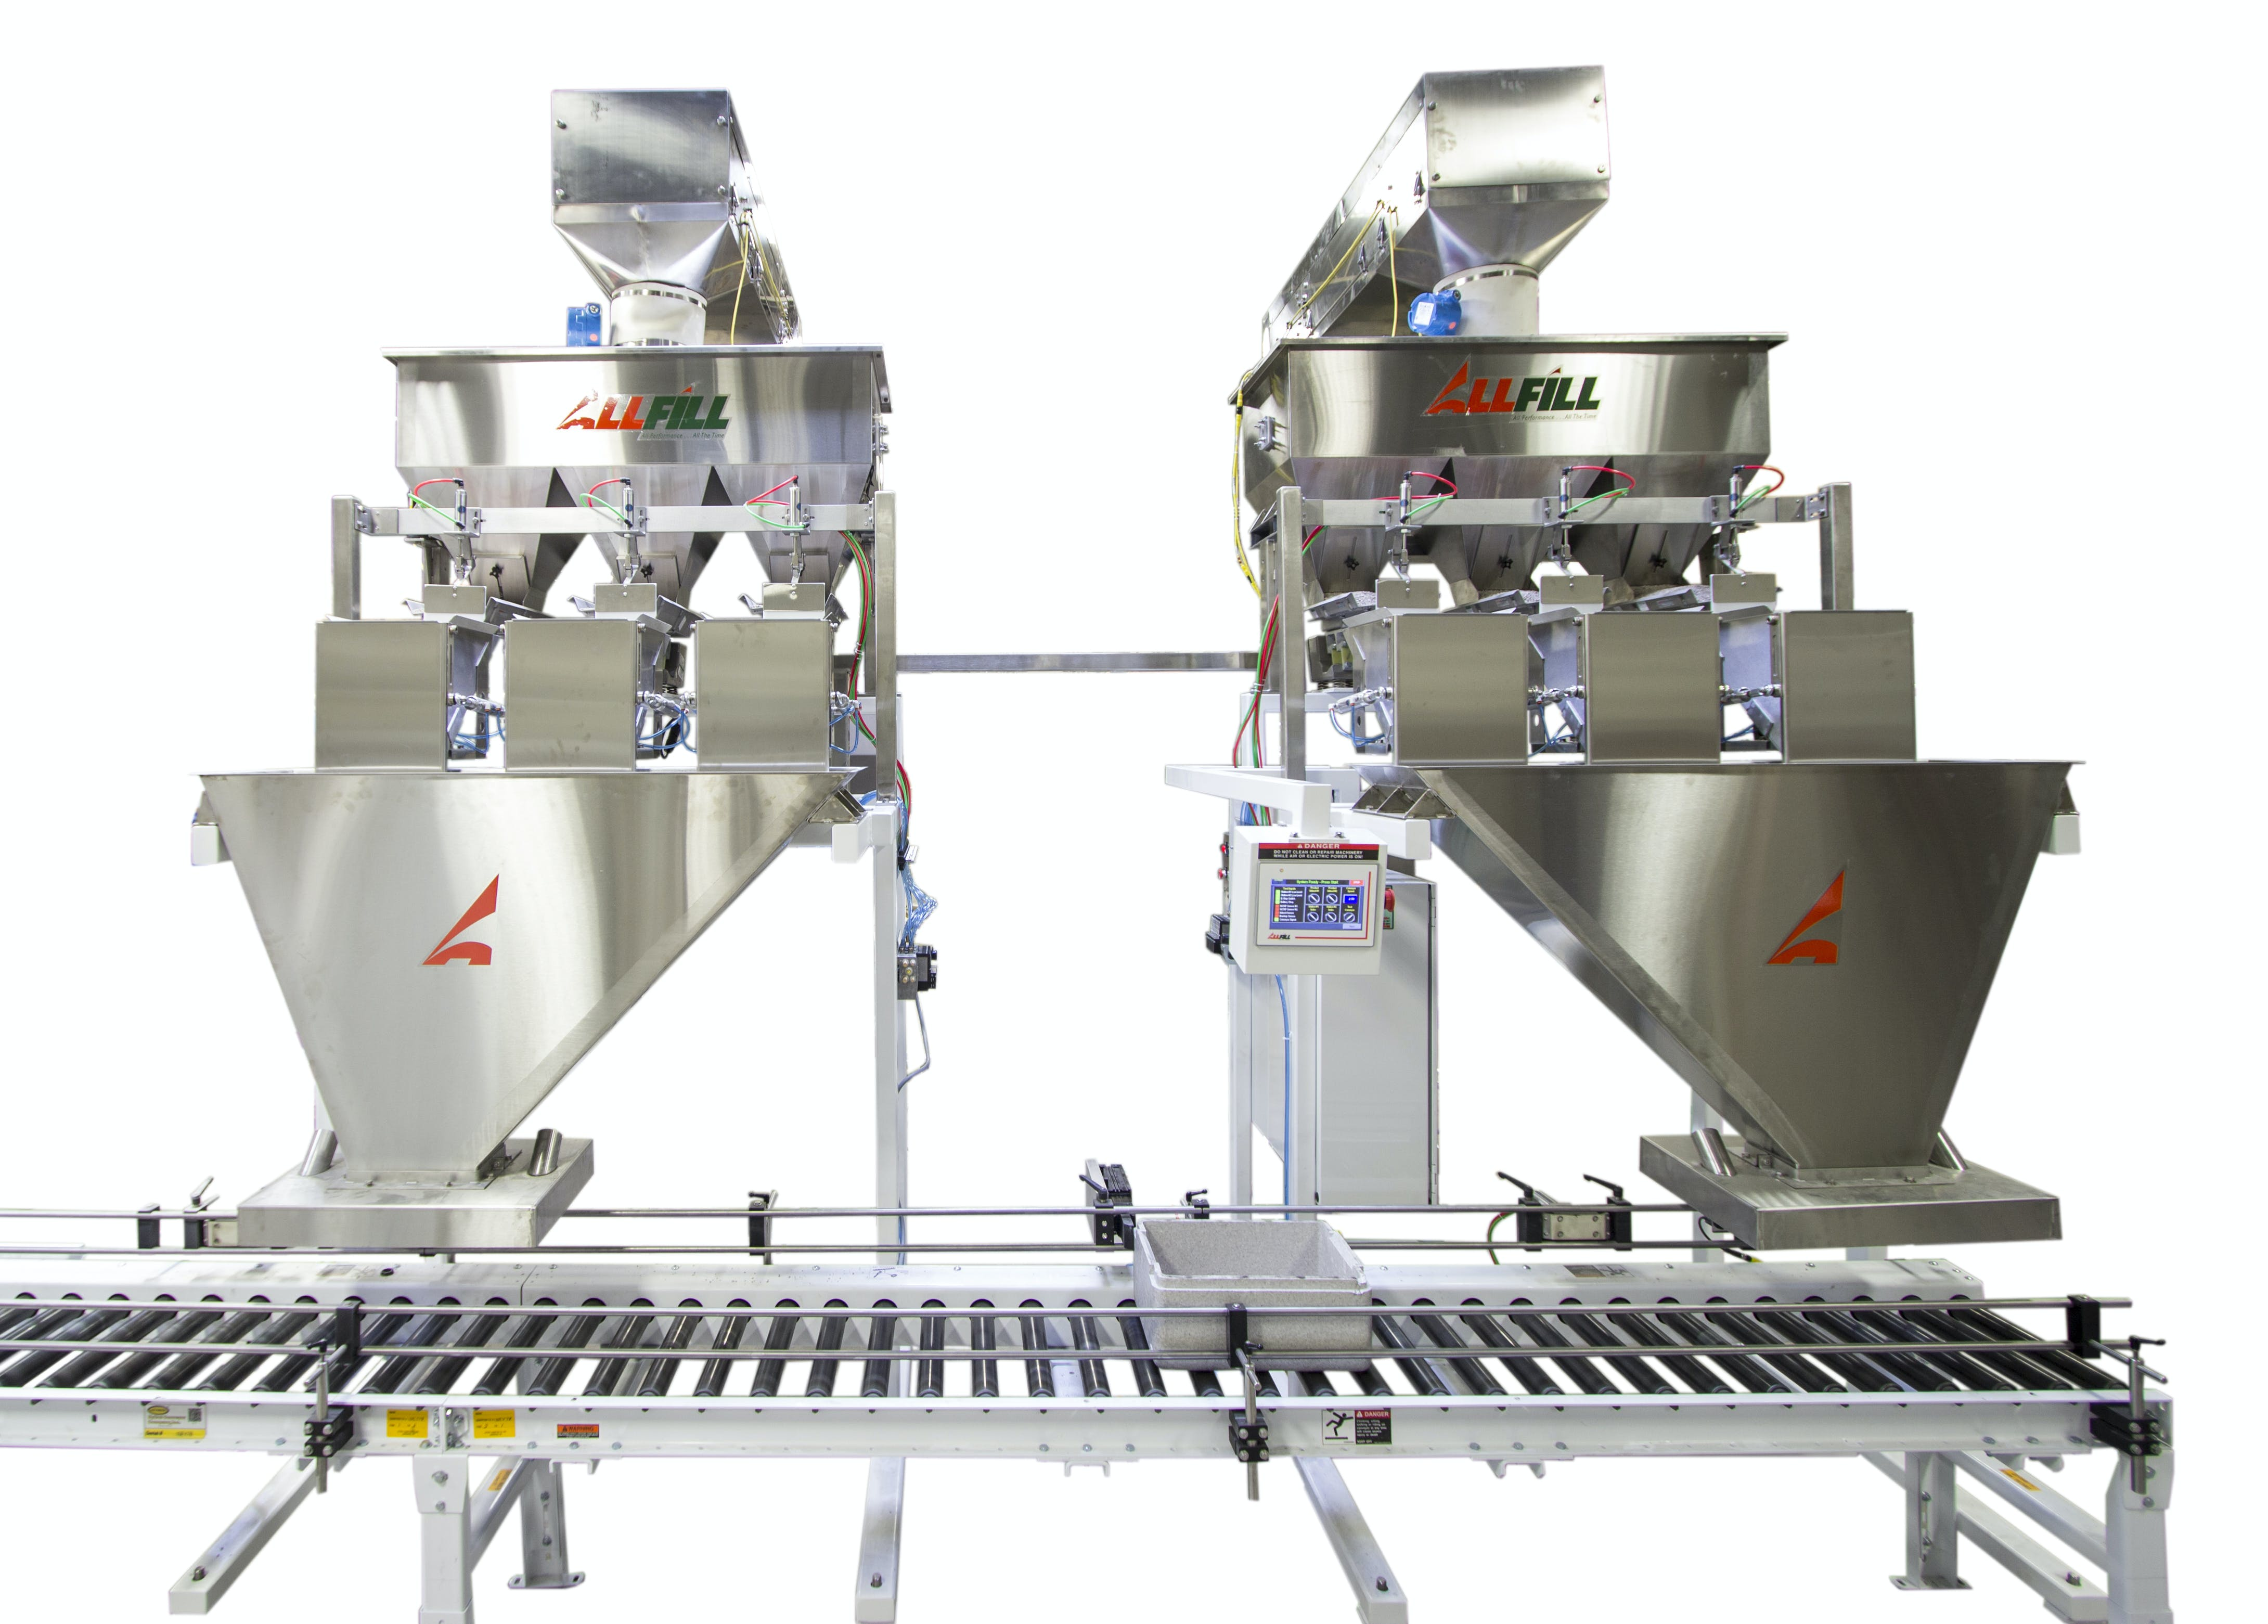 VF-HDX Series Net weight filler sold by All-Fill